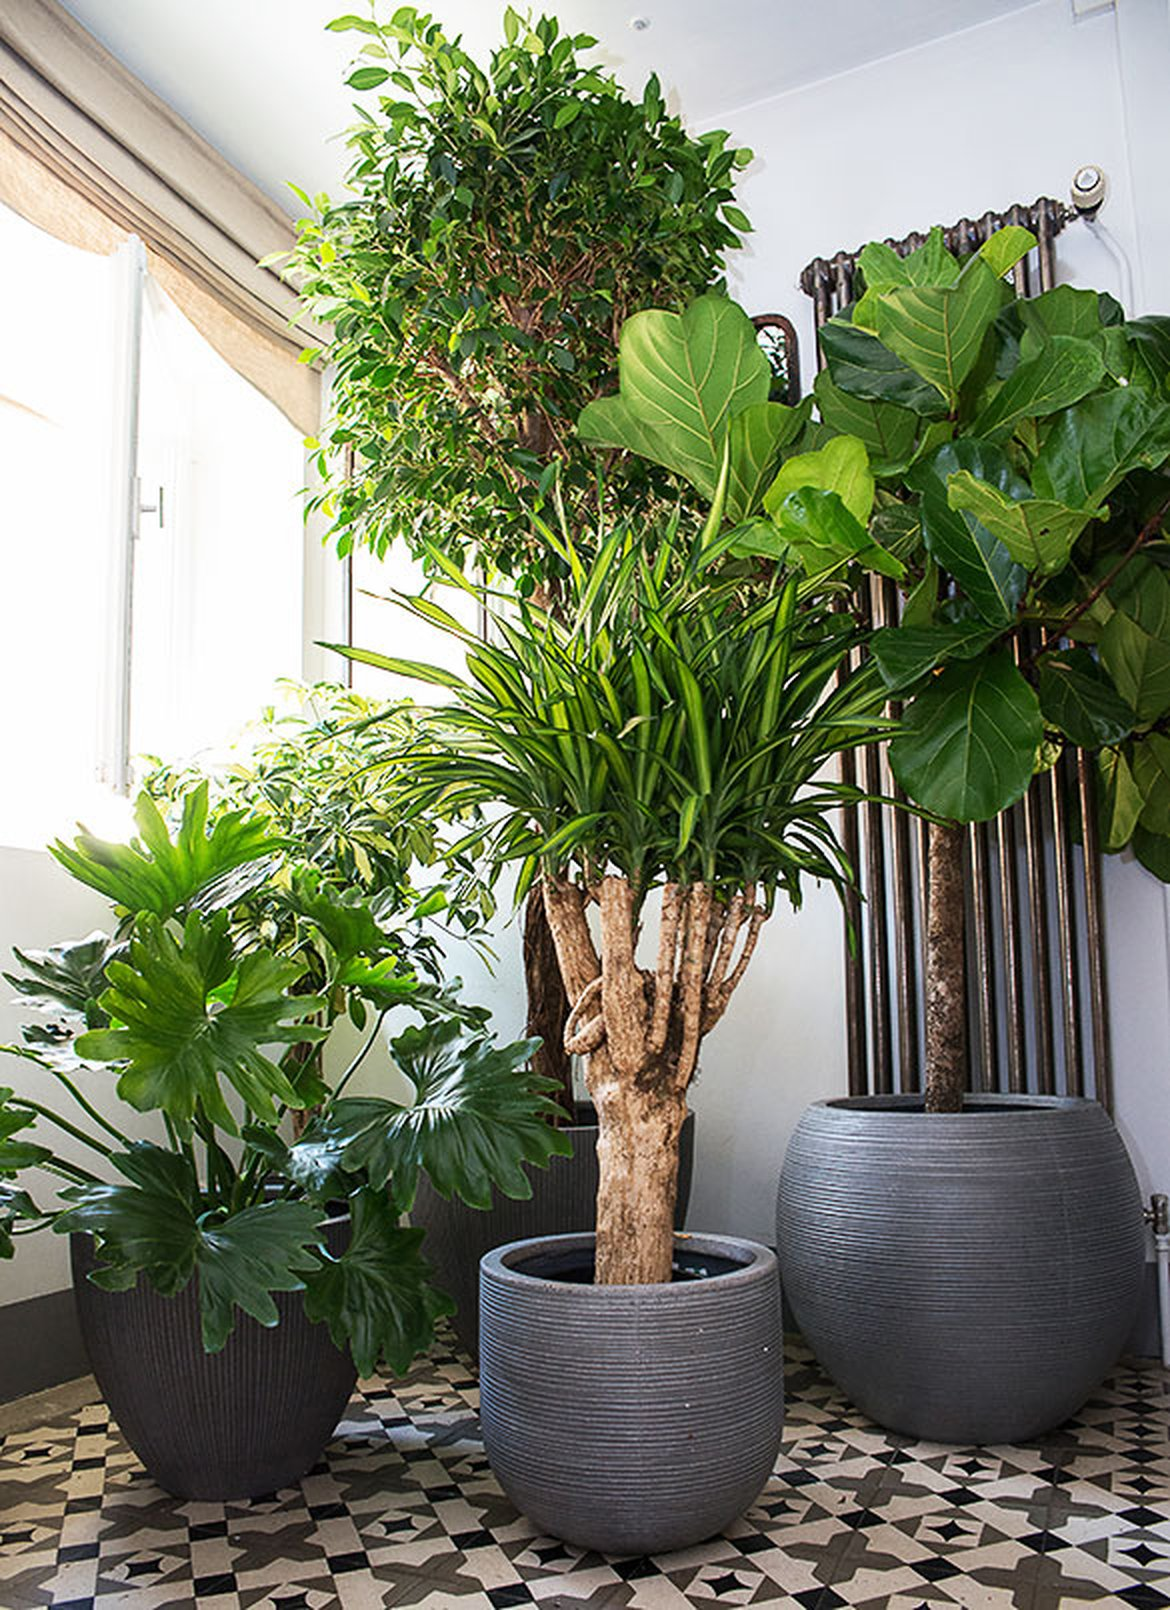 Plantes d interieur decoration fashion designs for Plante interieur photo